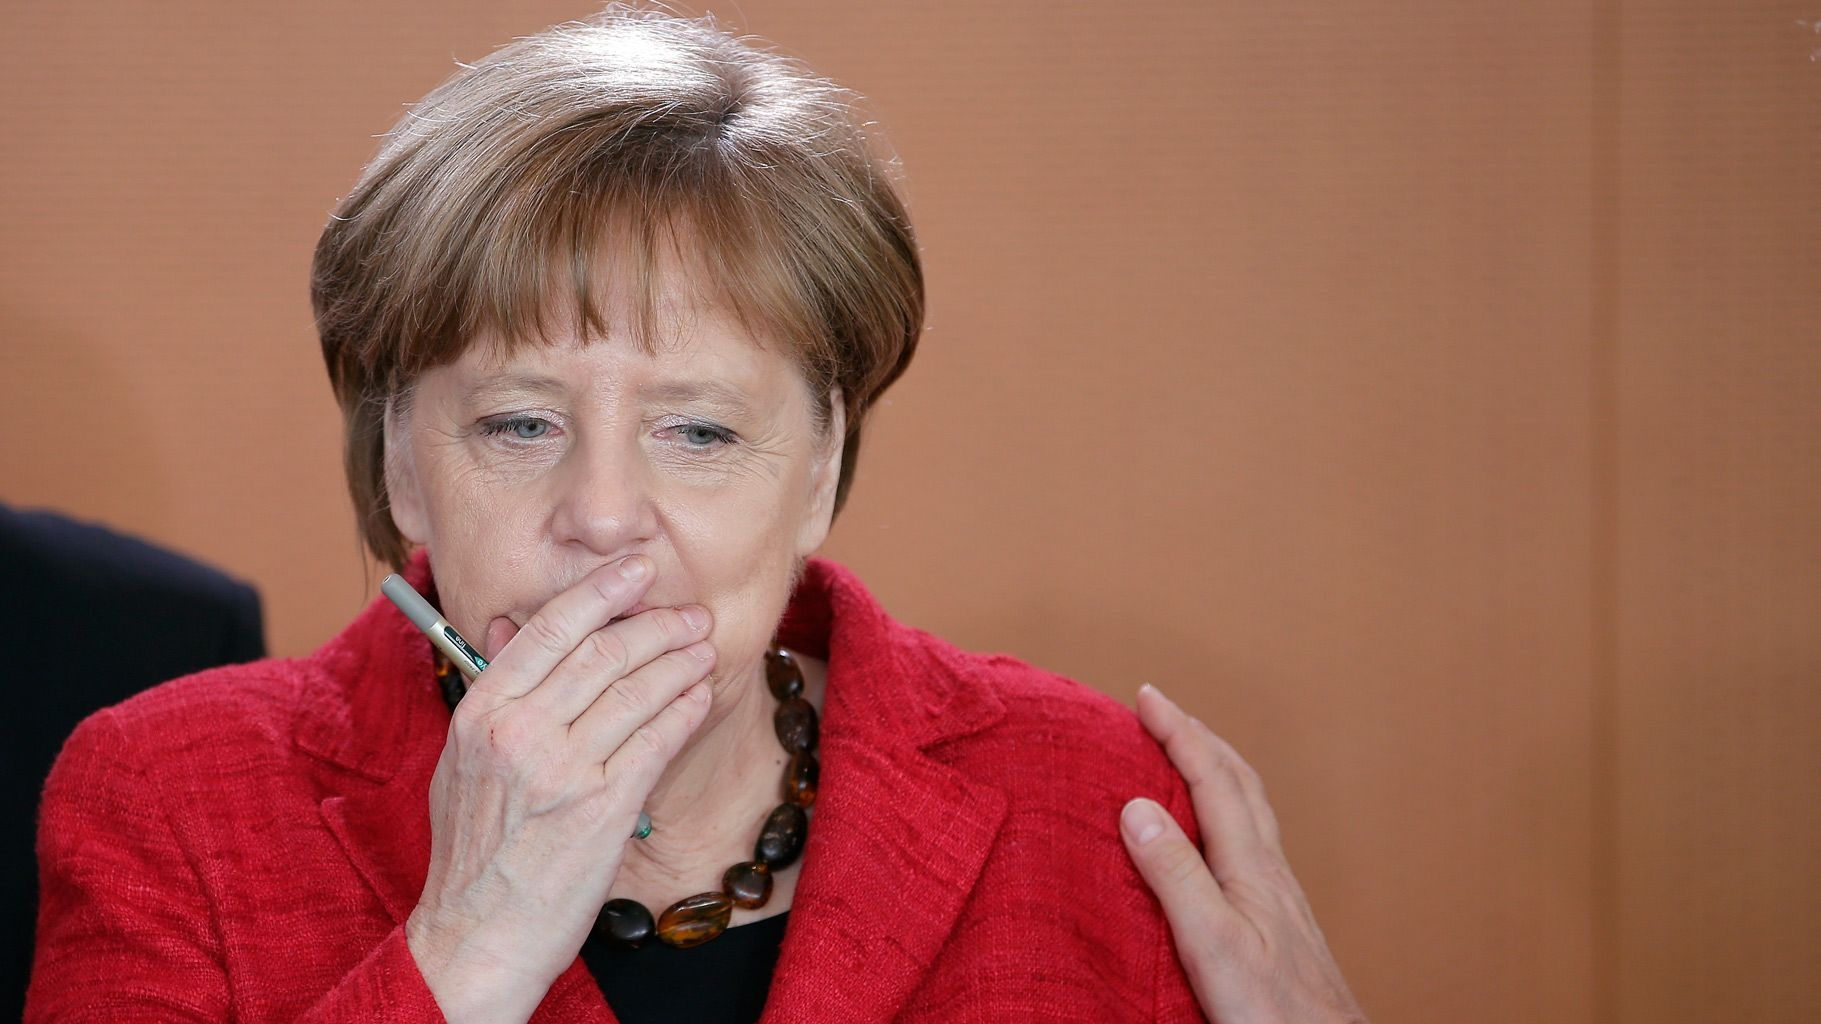 Angela Merkel's Health: Is a Public Figure Entitled to Privacy?